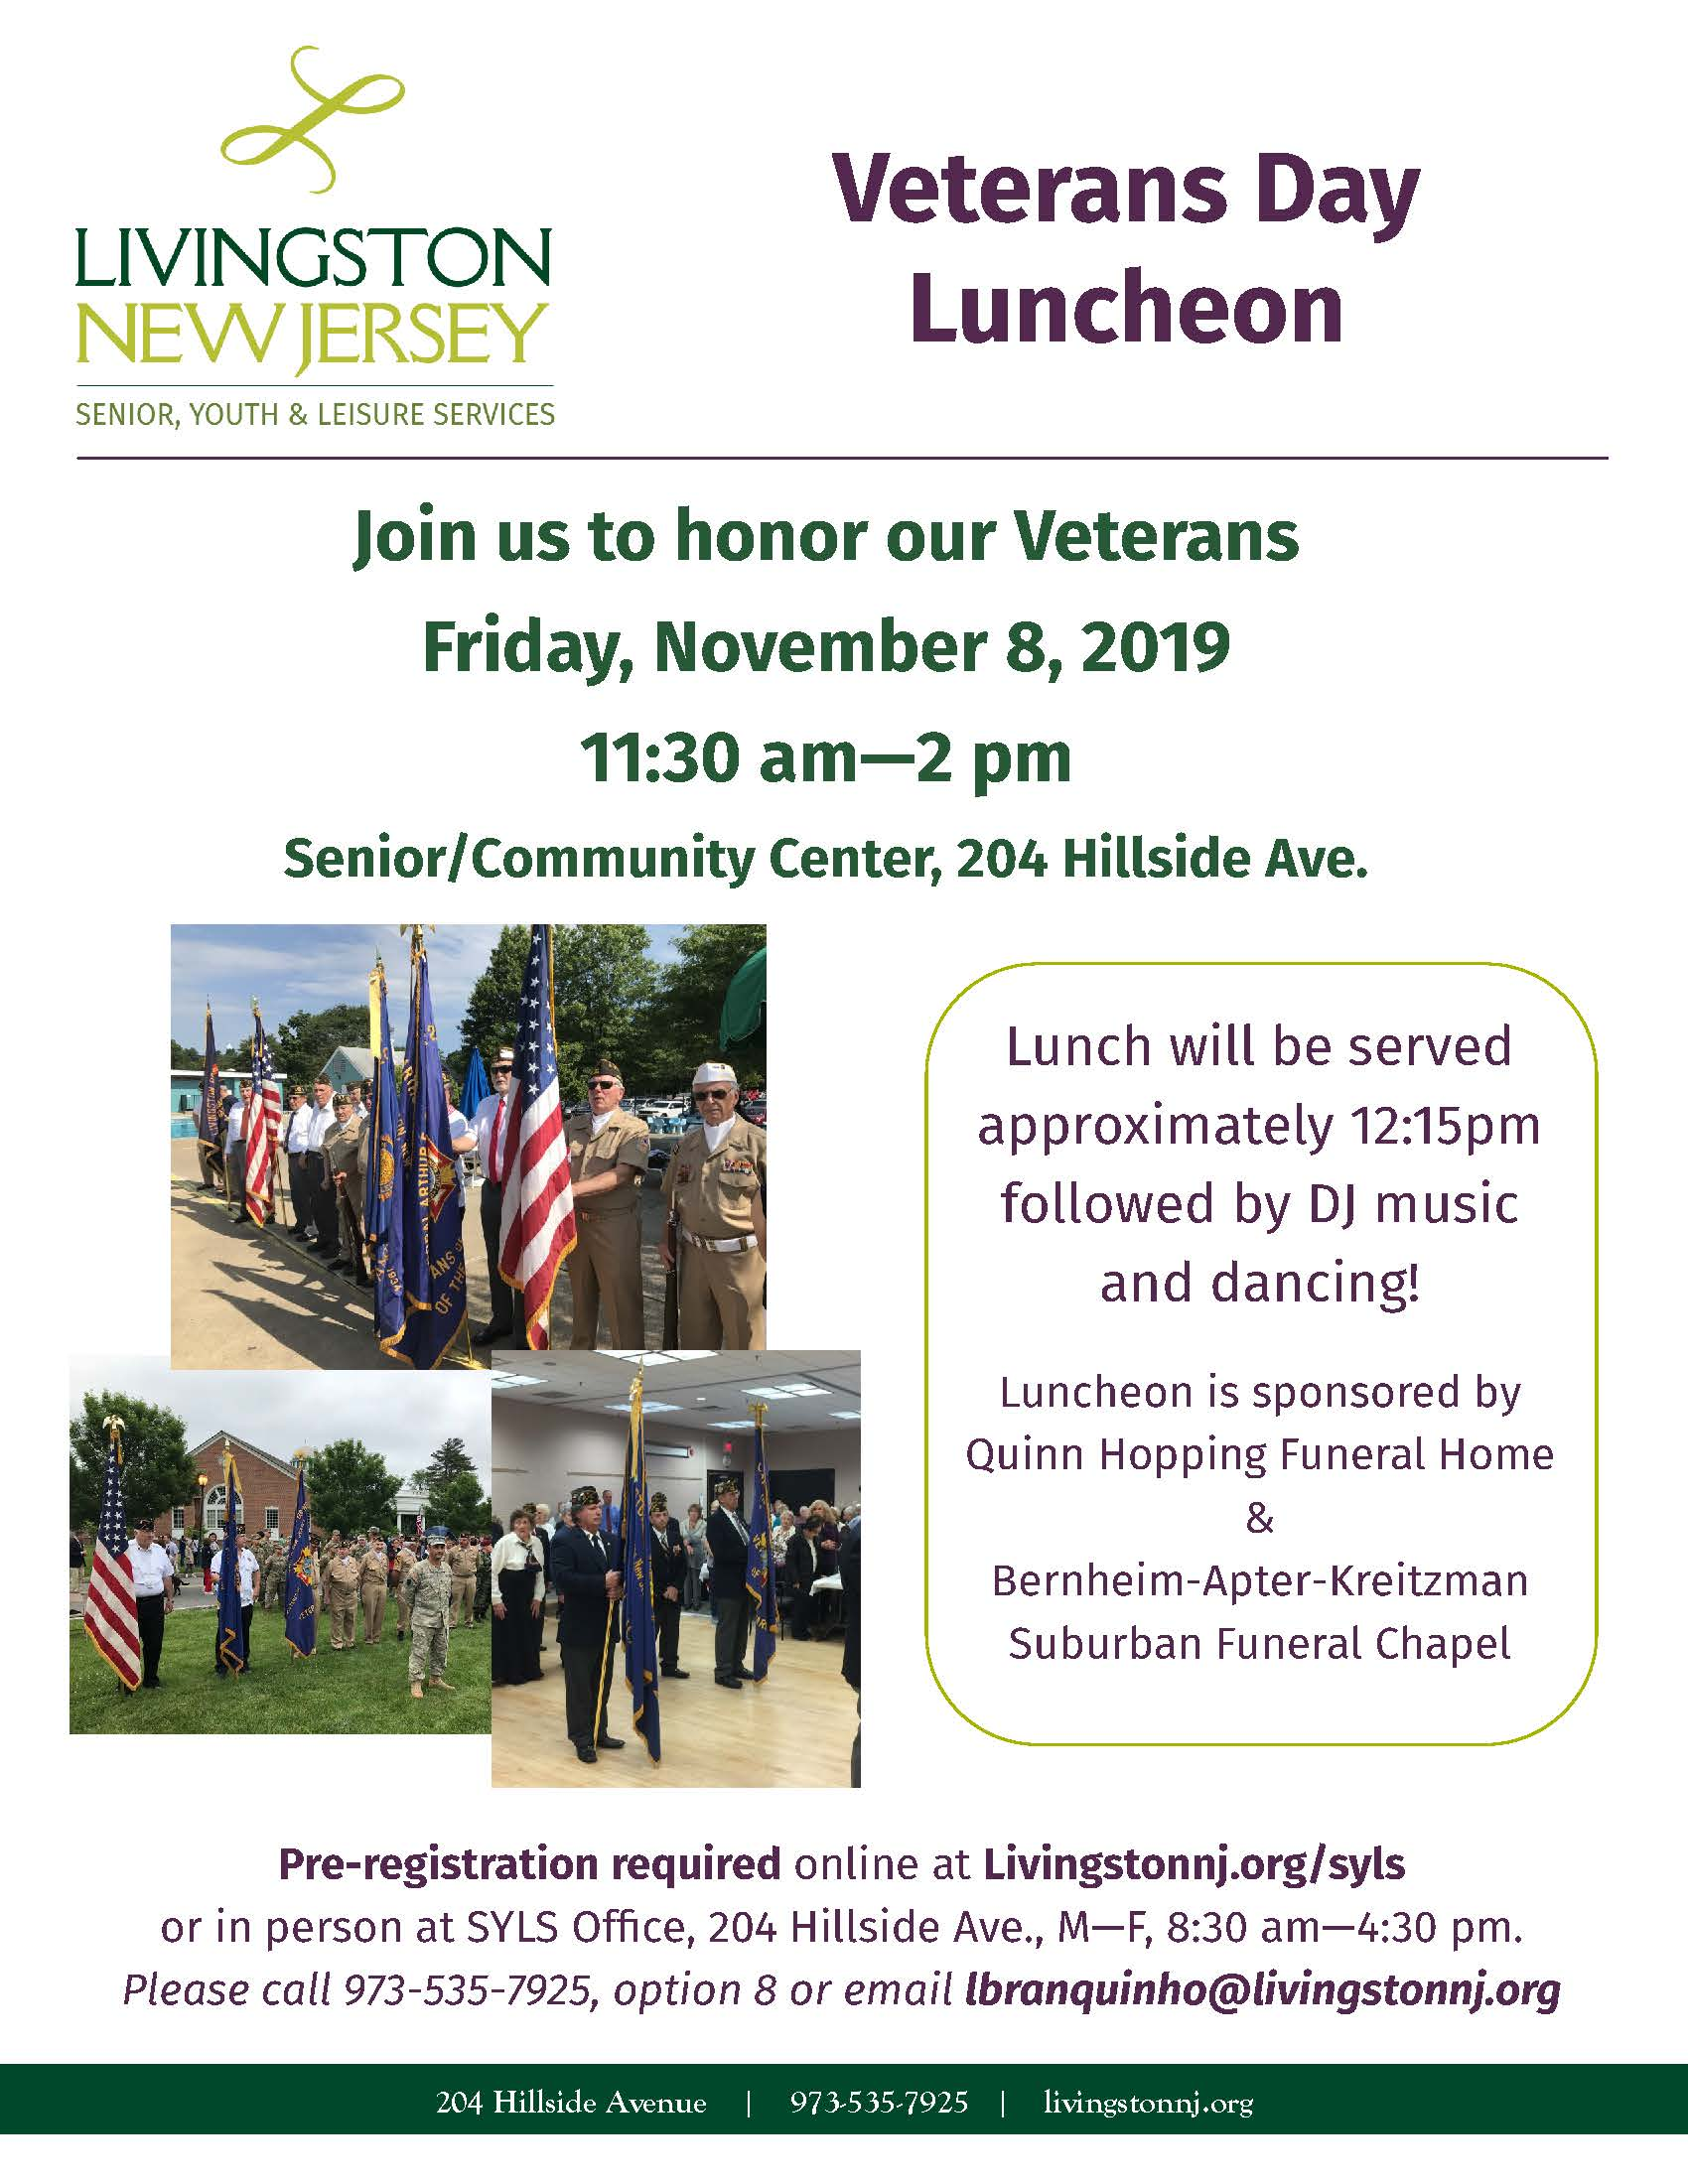 Veterans Day Luncheon 2019